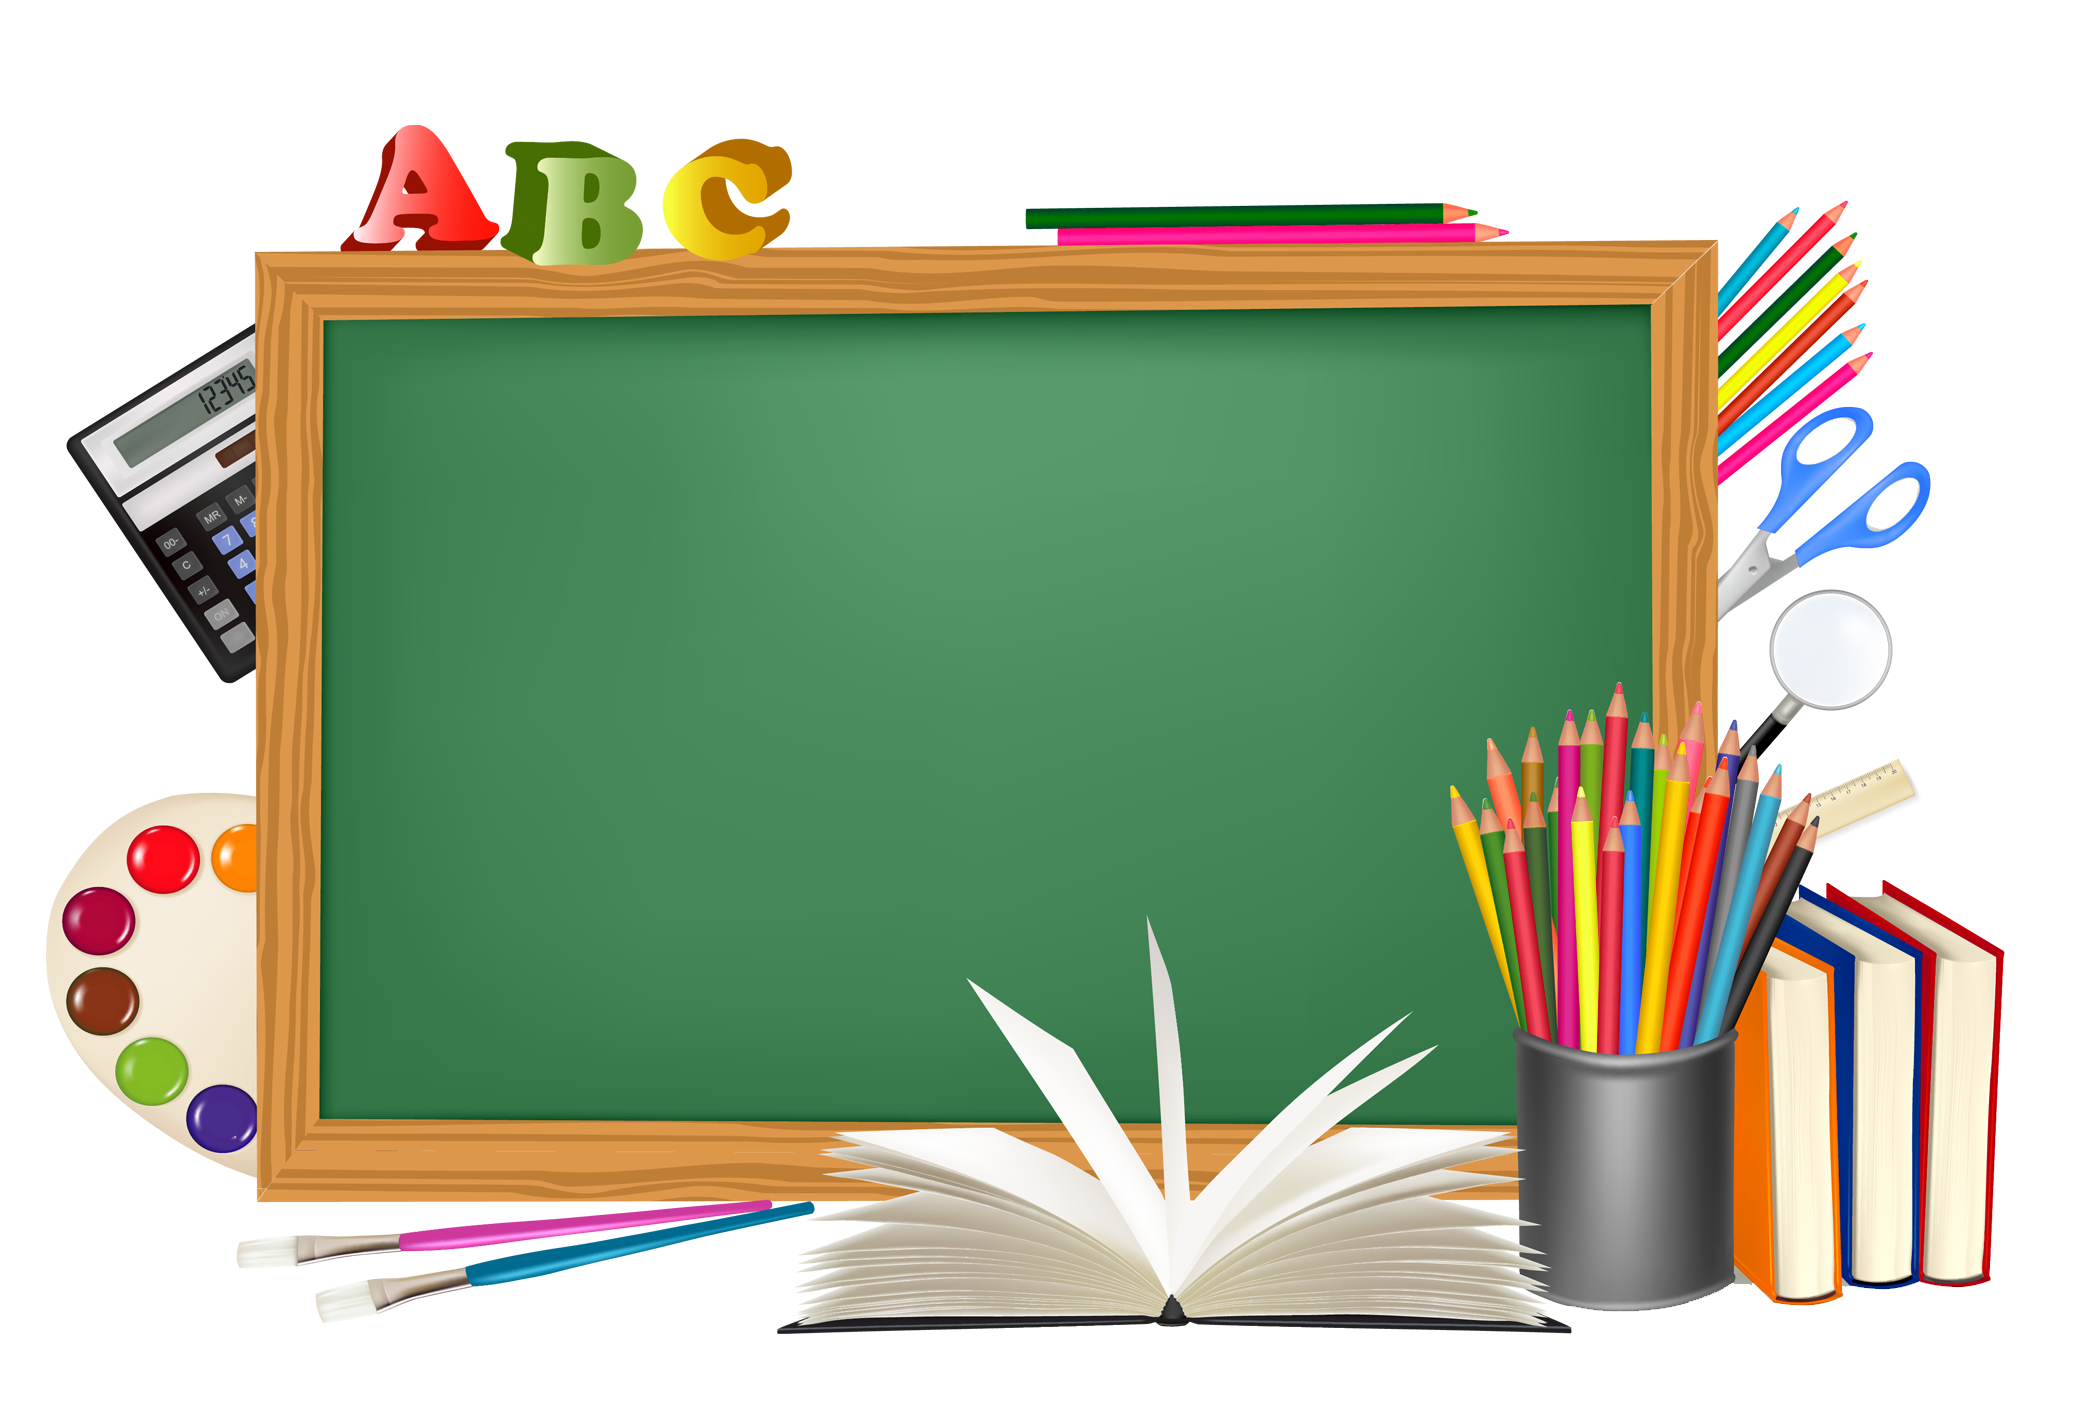 physical education clipart at getdrawings com free for personal rh getdrawings com Last day of school educational clip art images of books